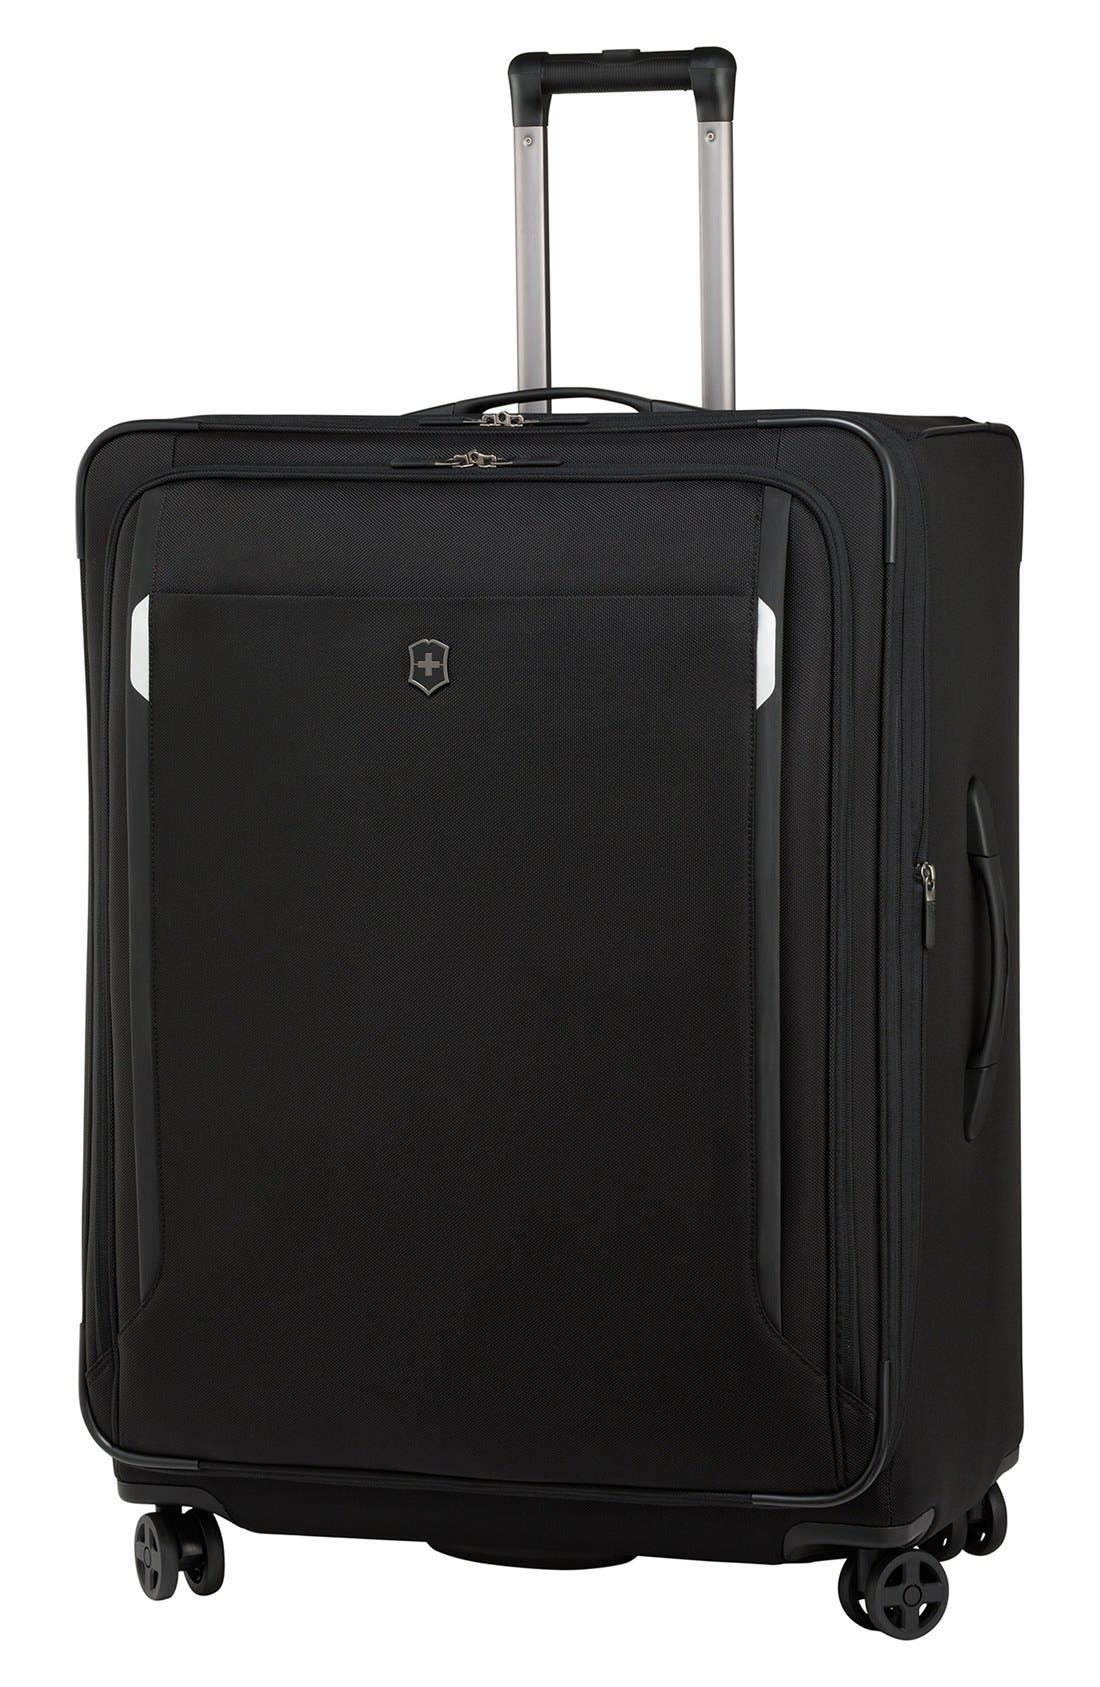 'WT 5.0' Dual Caster Wheeled Packing Case,                         Main,                         color, Black